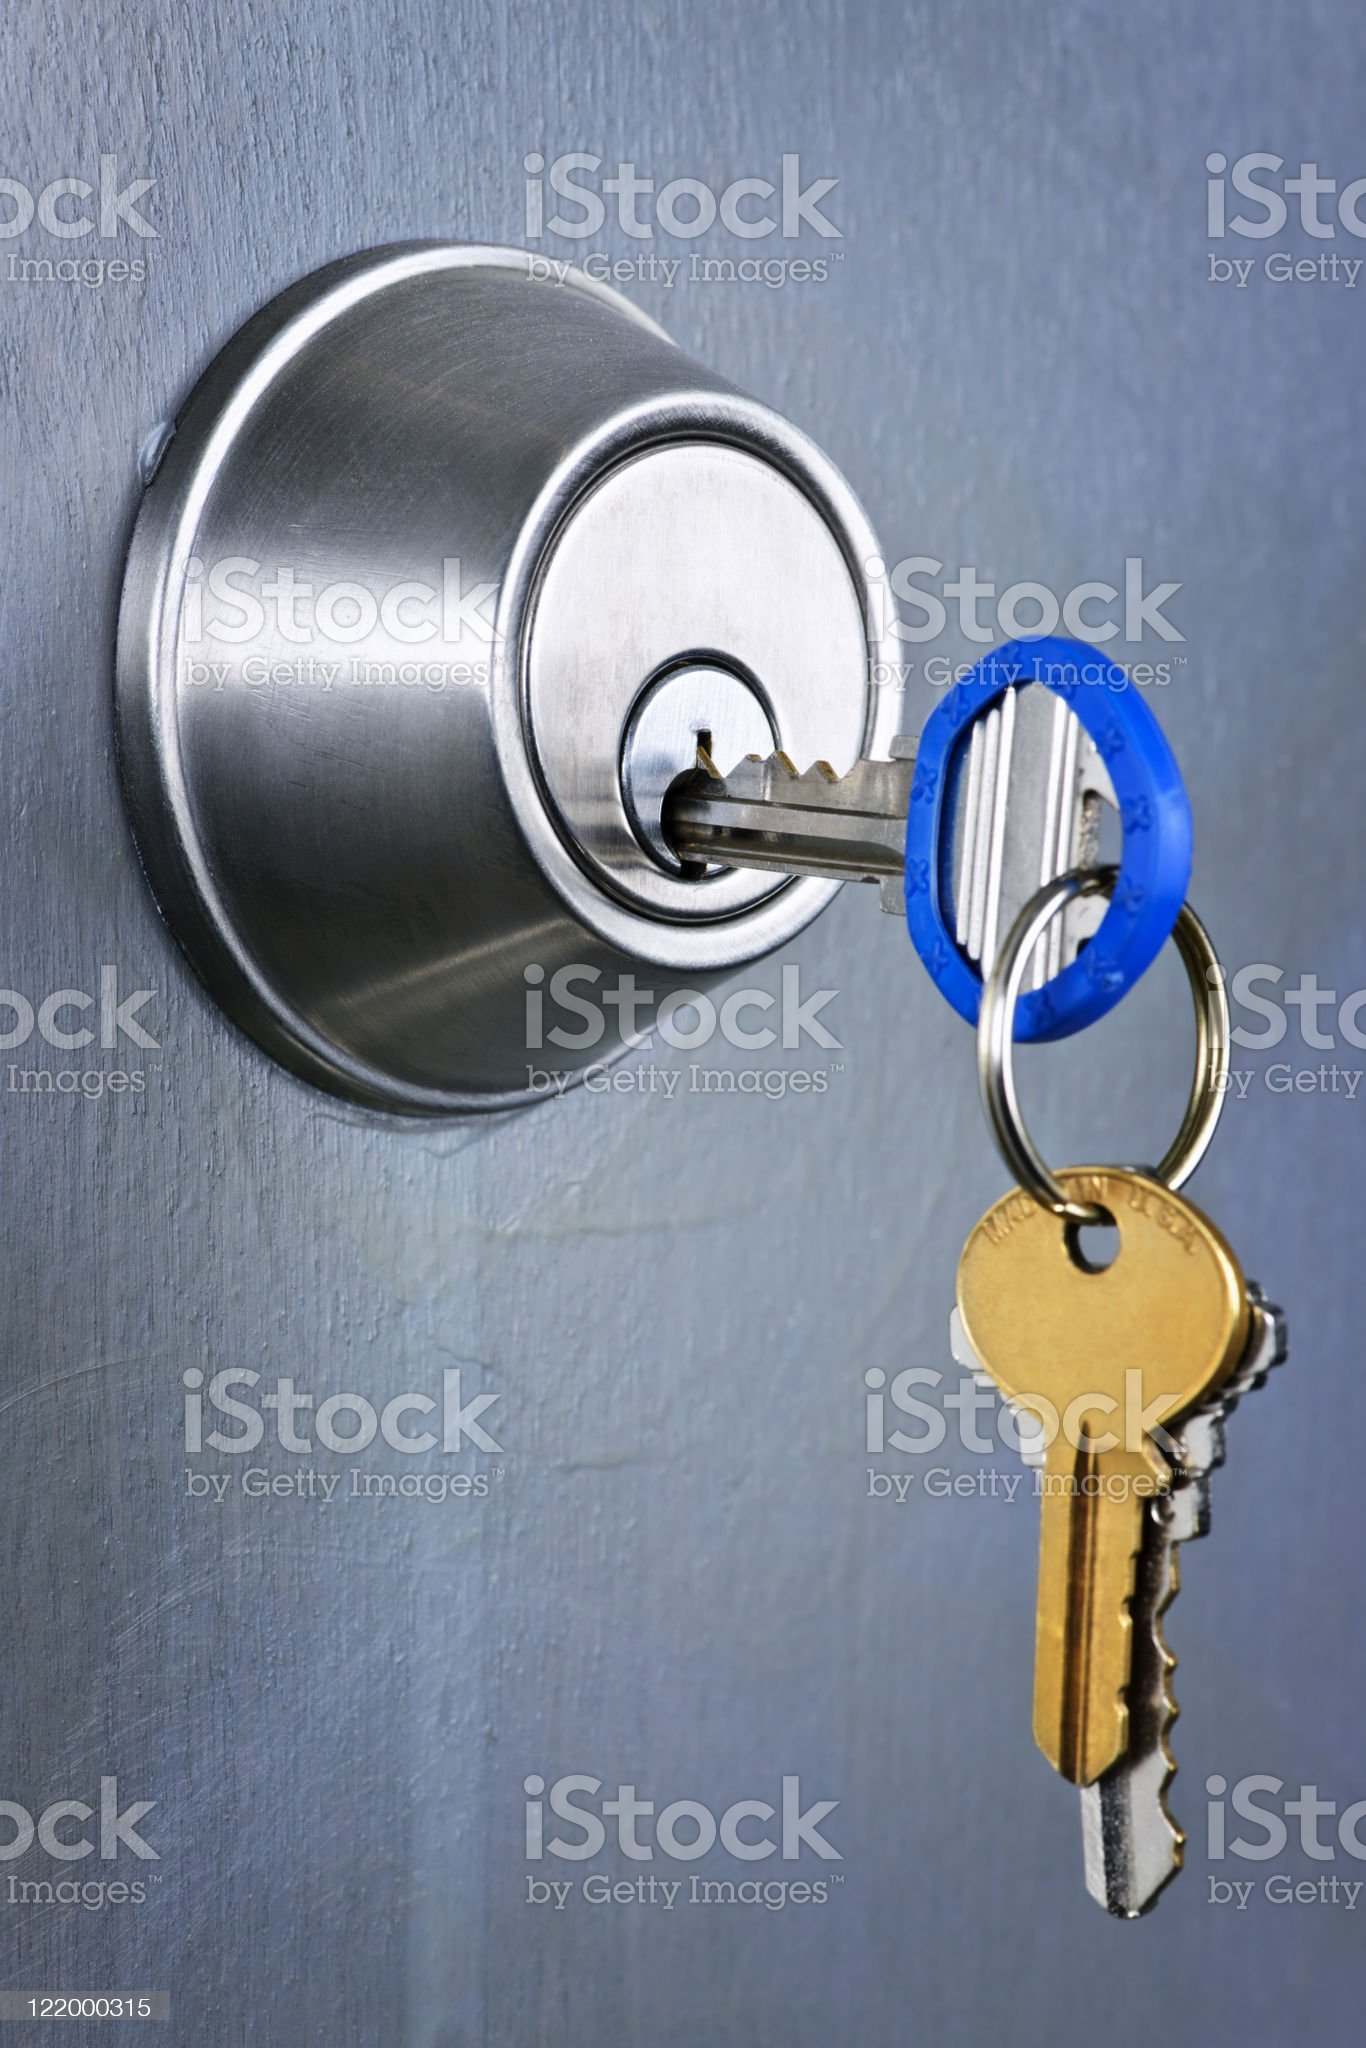 A keychain with three keys and a key in a lock royalty-free stock photo